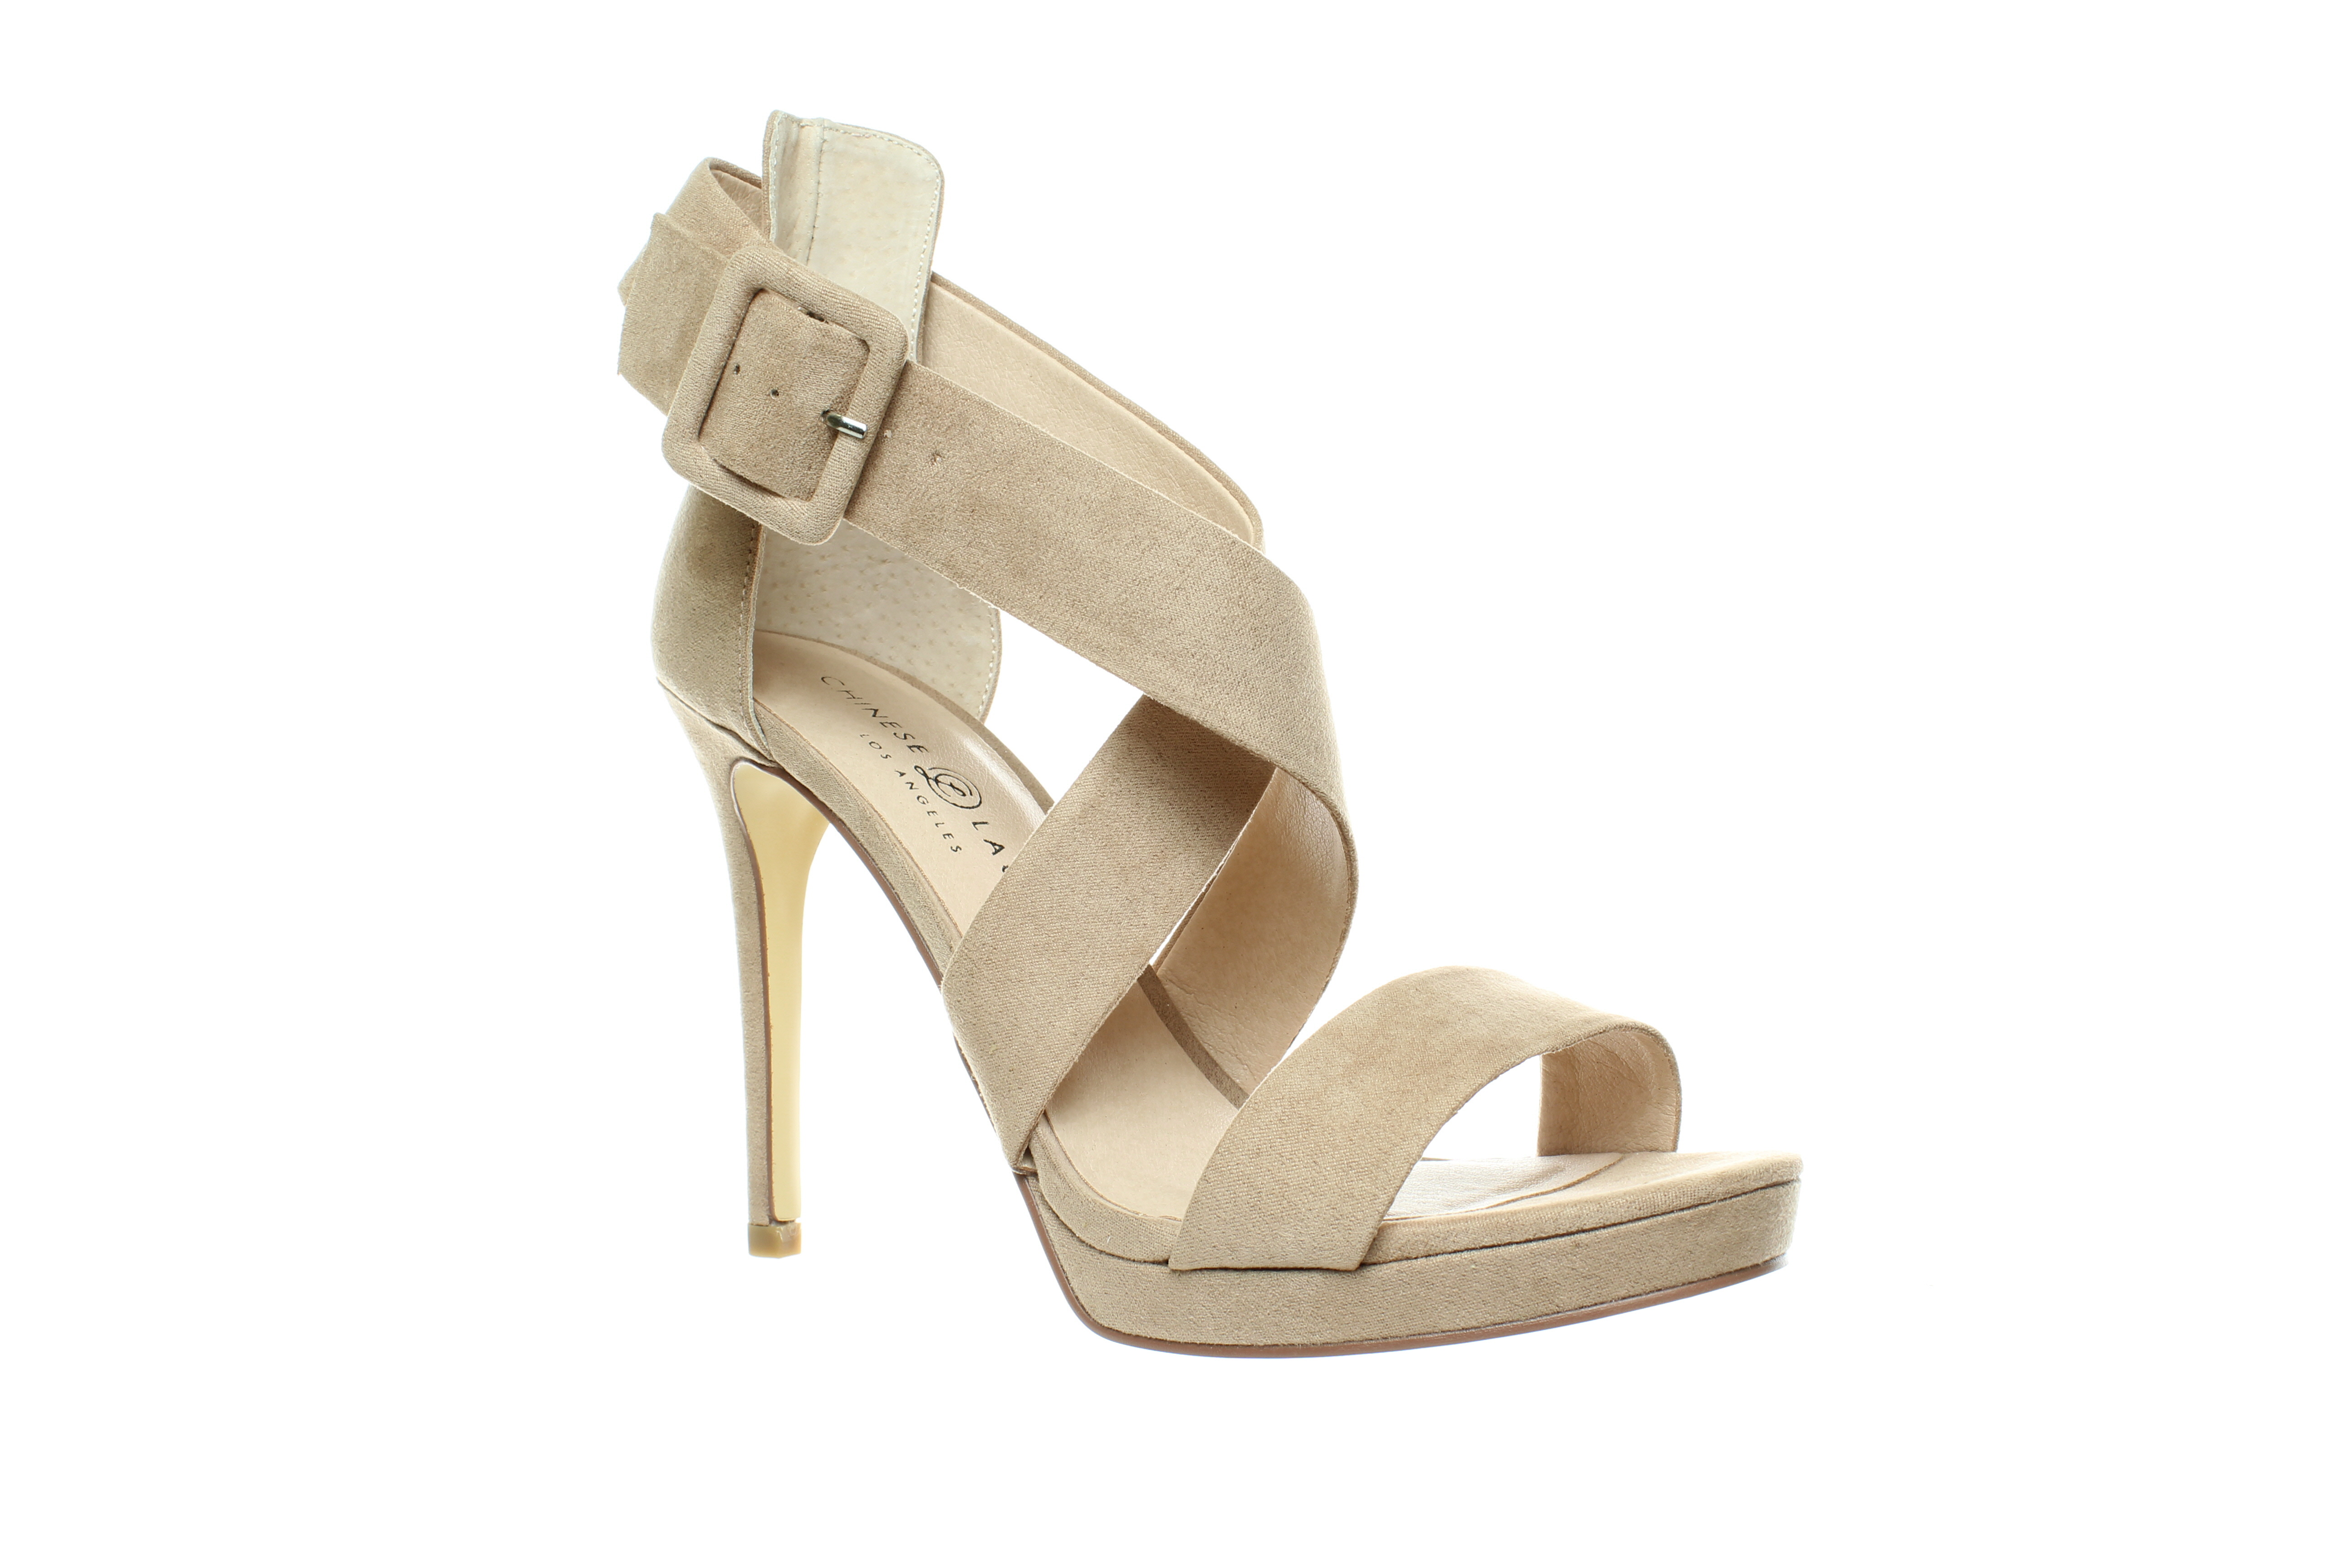 Chinese Laundry Womens Rumor Dark Nude Suede Ankle Strap